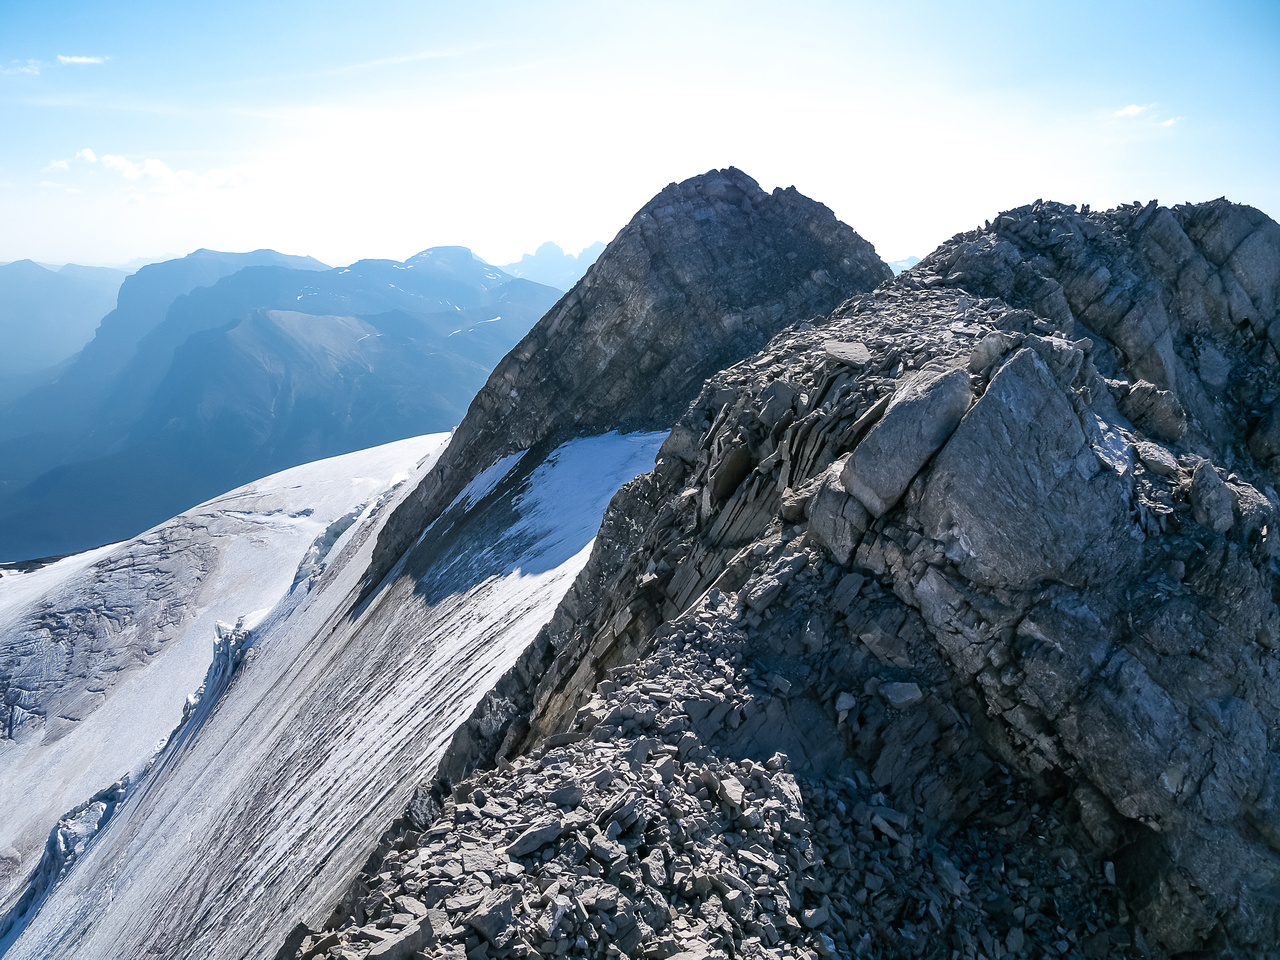 The summit ridge stretches before us - the glacier route joining on the left.